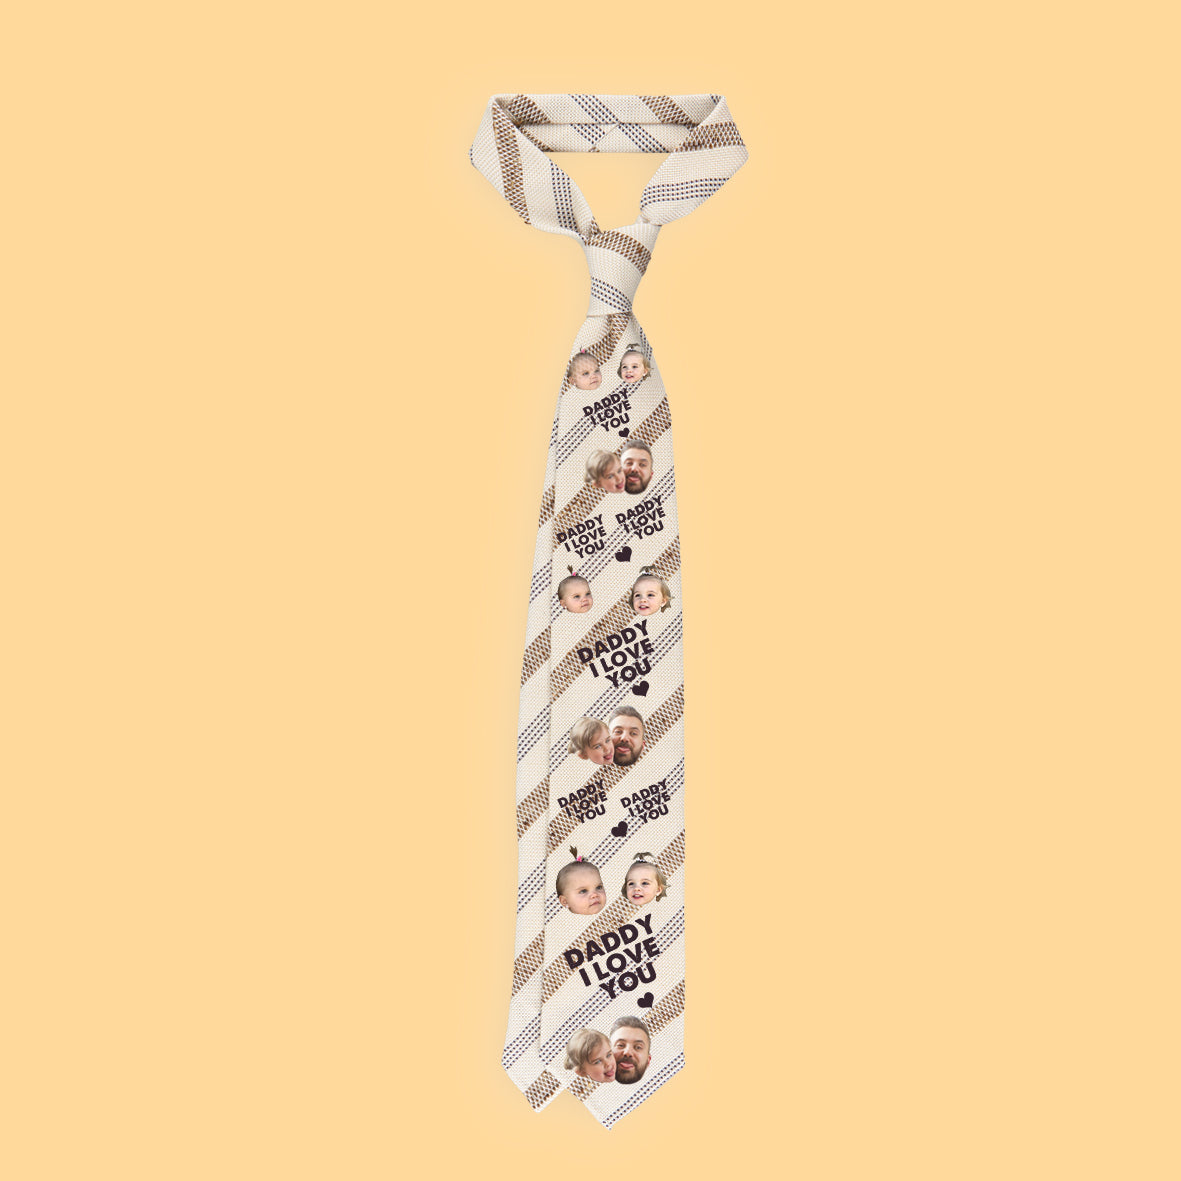 personalized ties daddy i love you maximum 4 faces limit